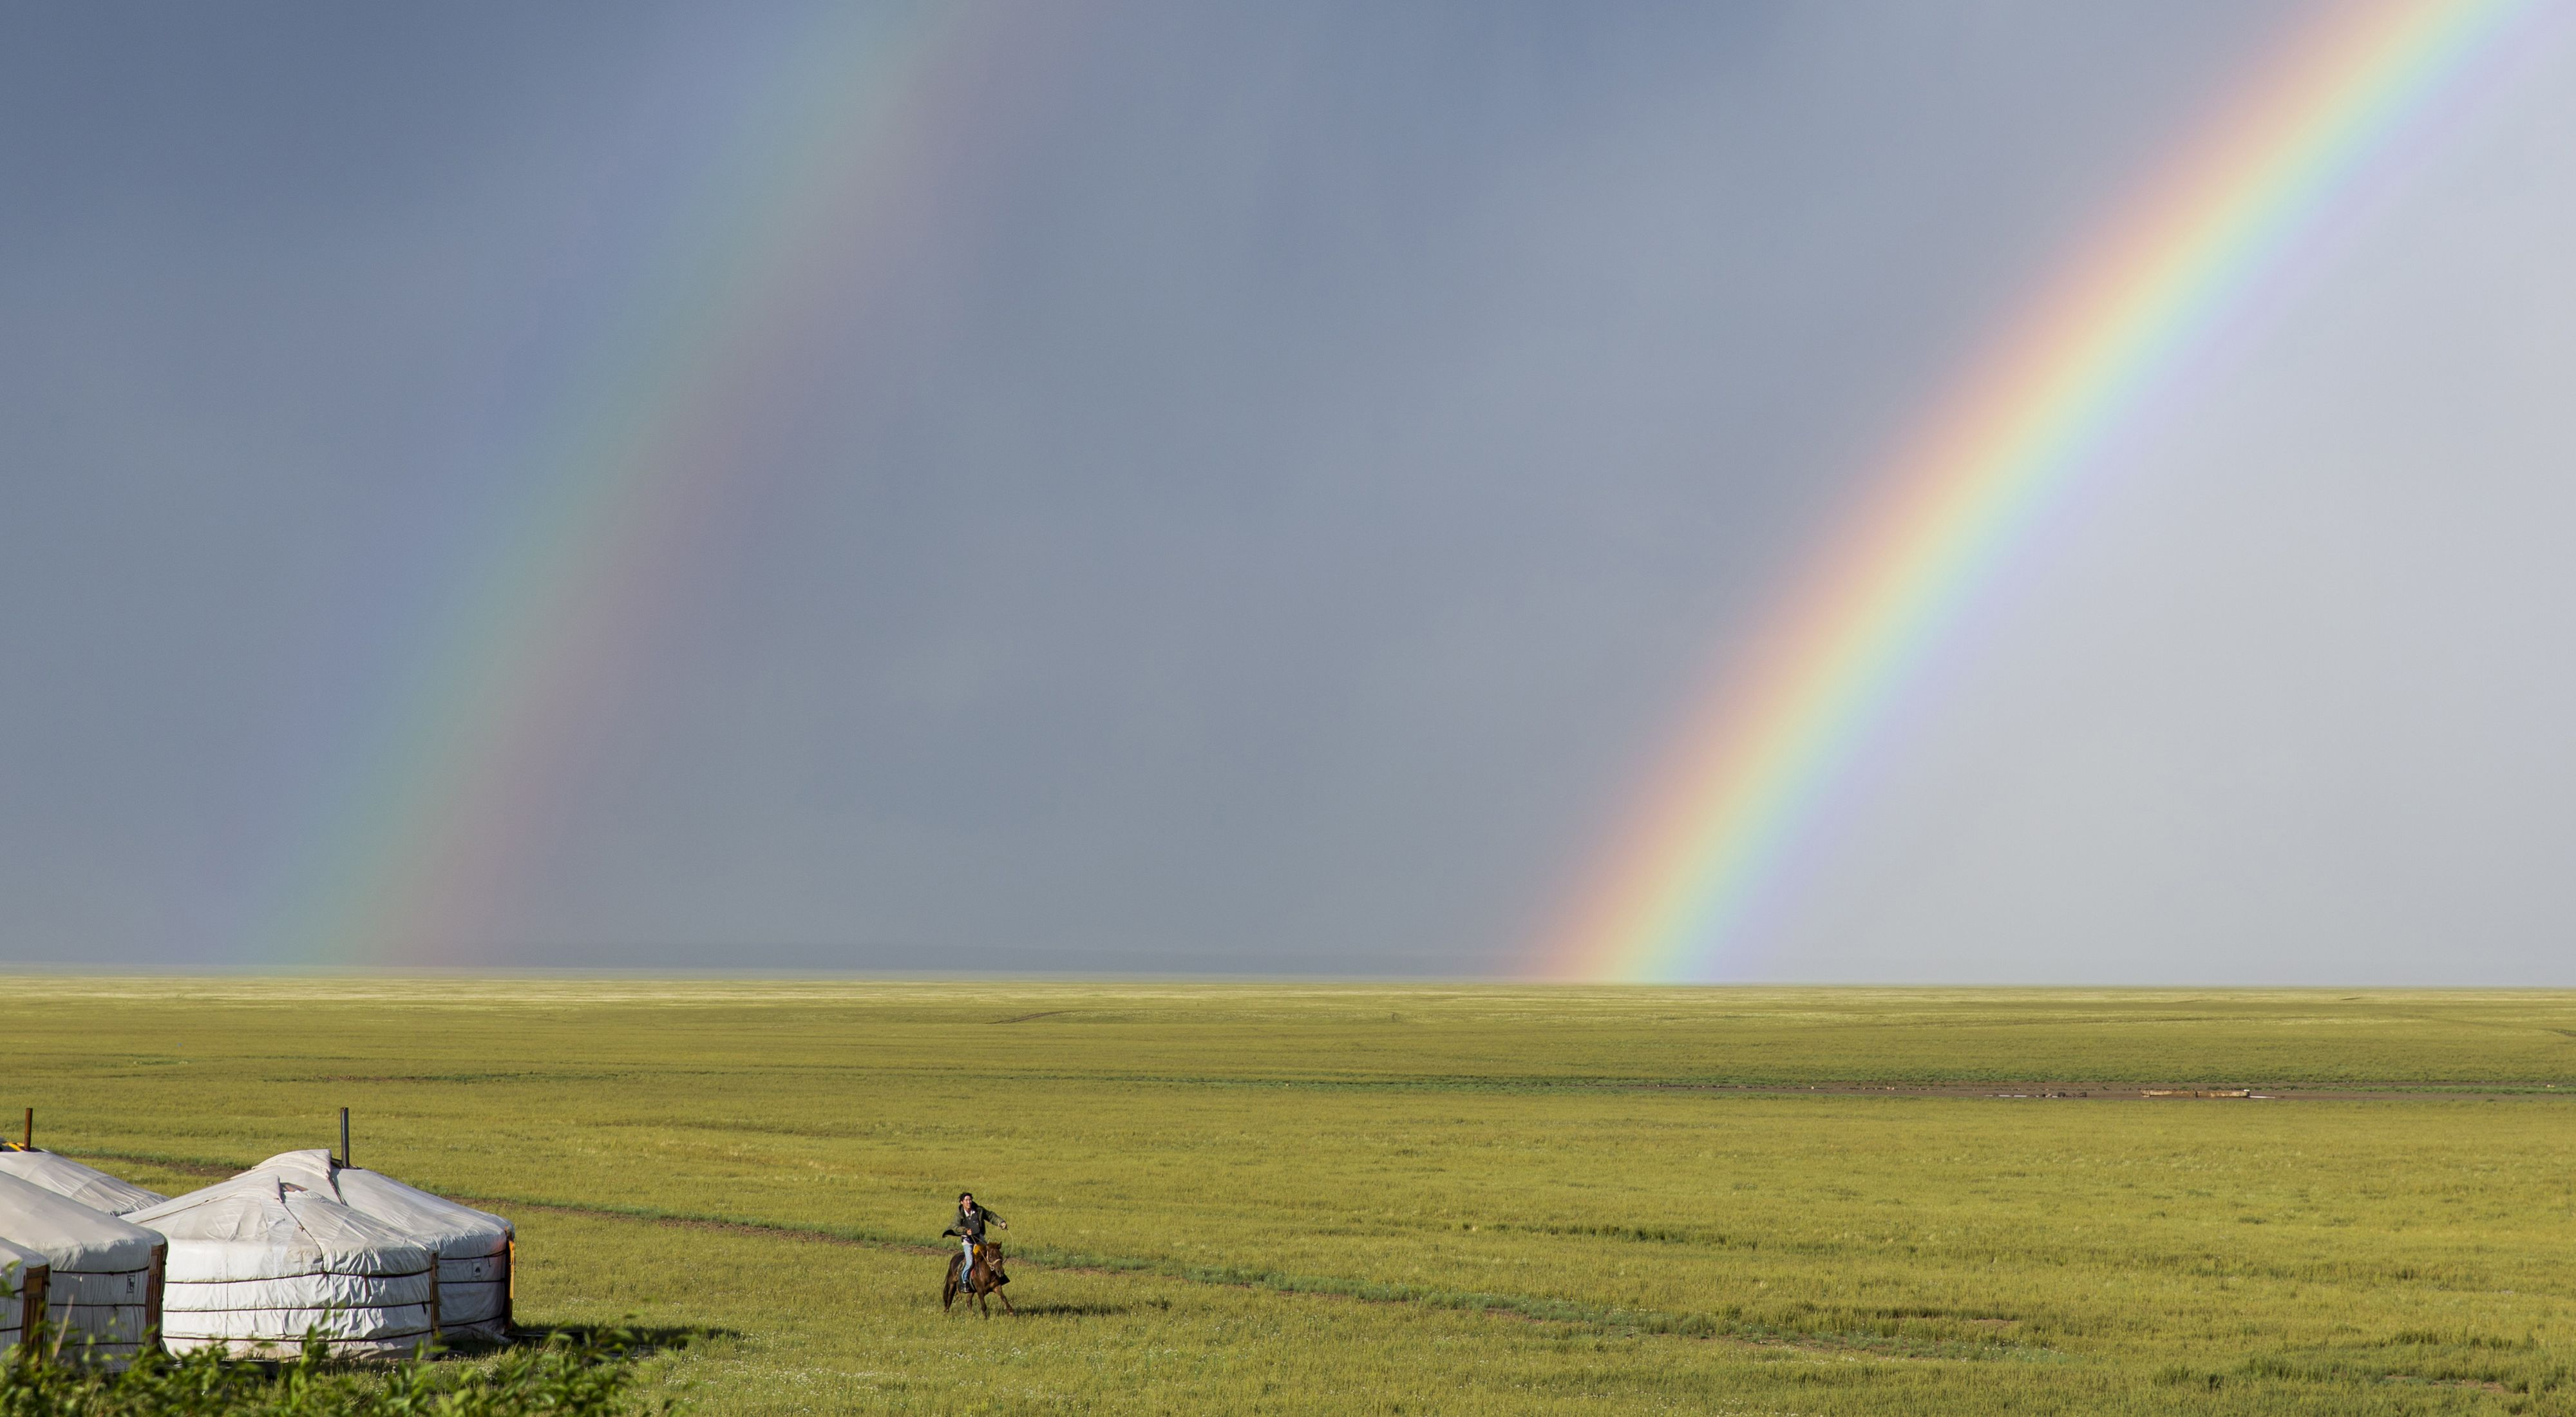 past gers and a double rainbow in the South Gobi Desert, Mongolia.